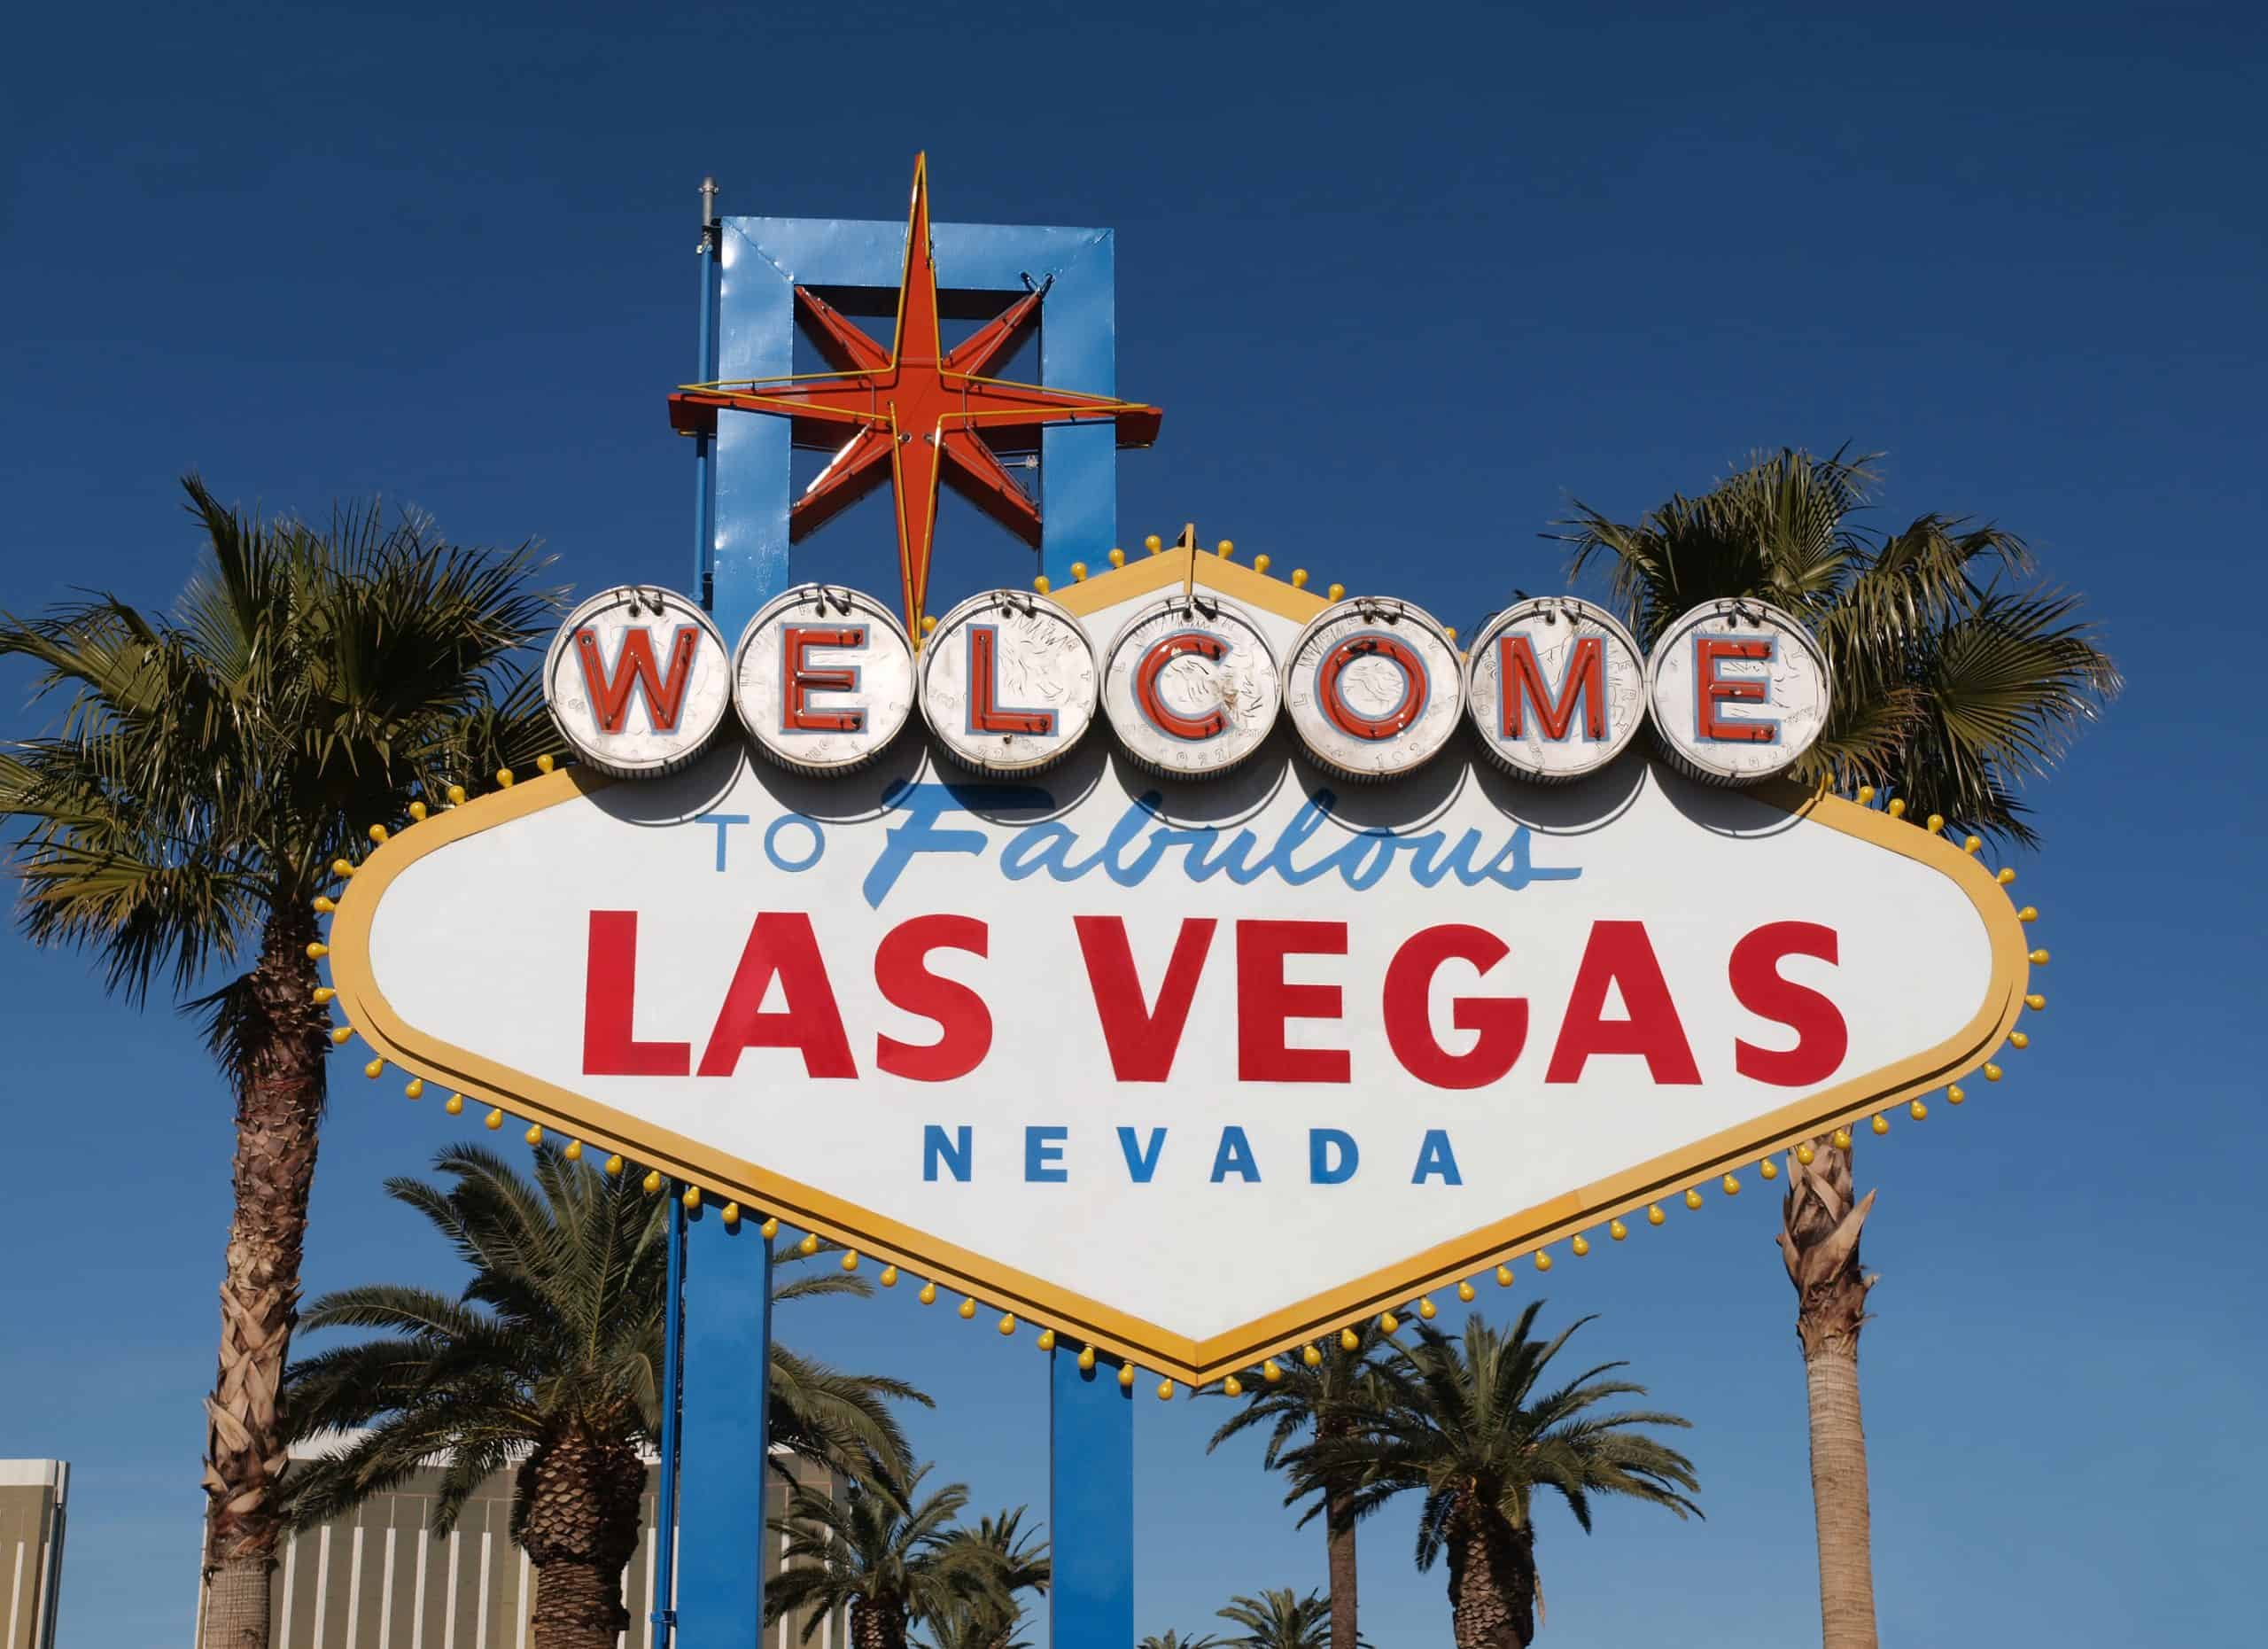 Las Vegas Nevada welcome sign